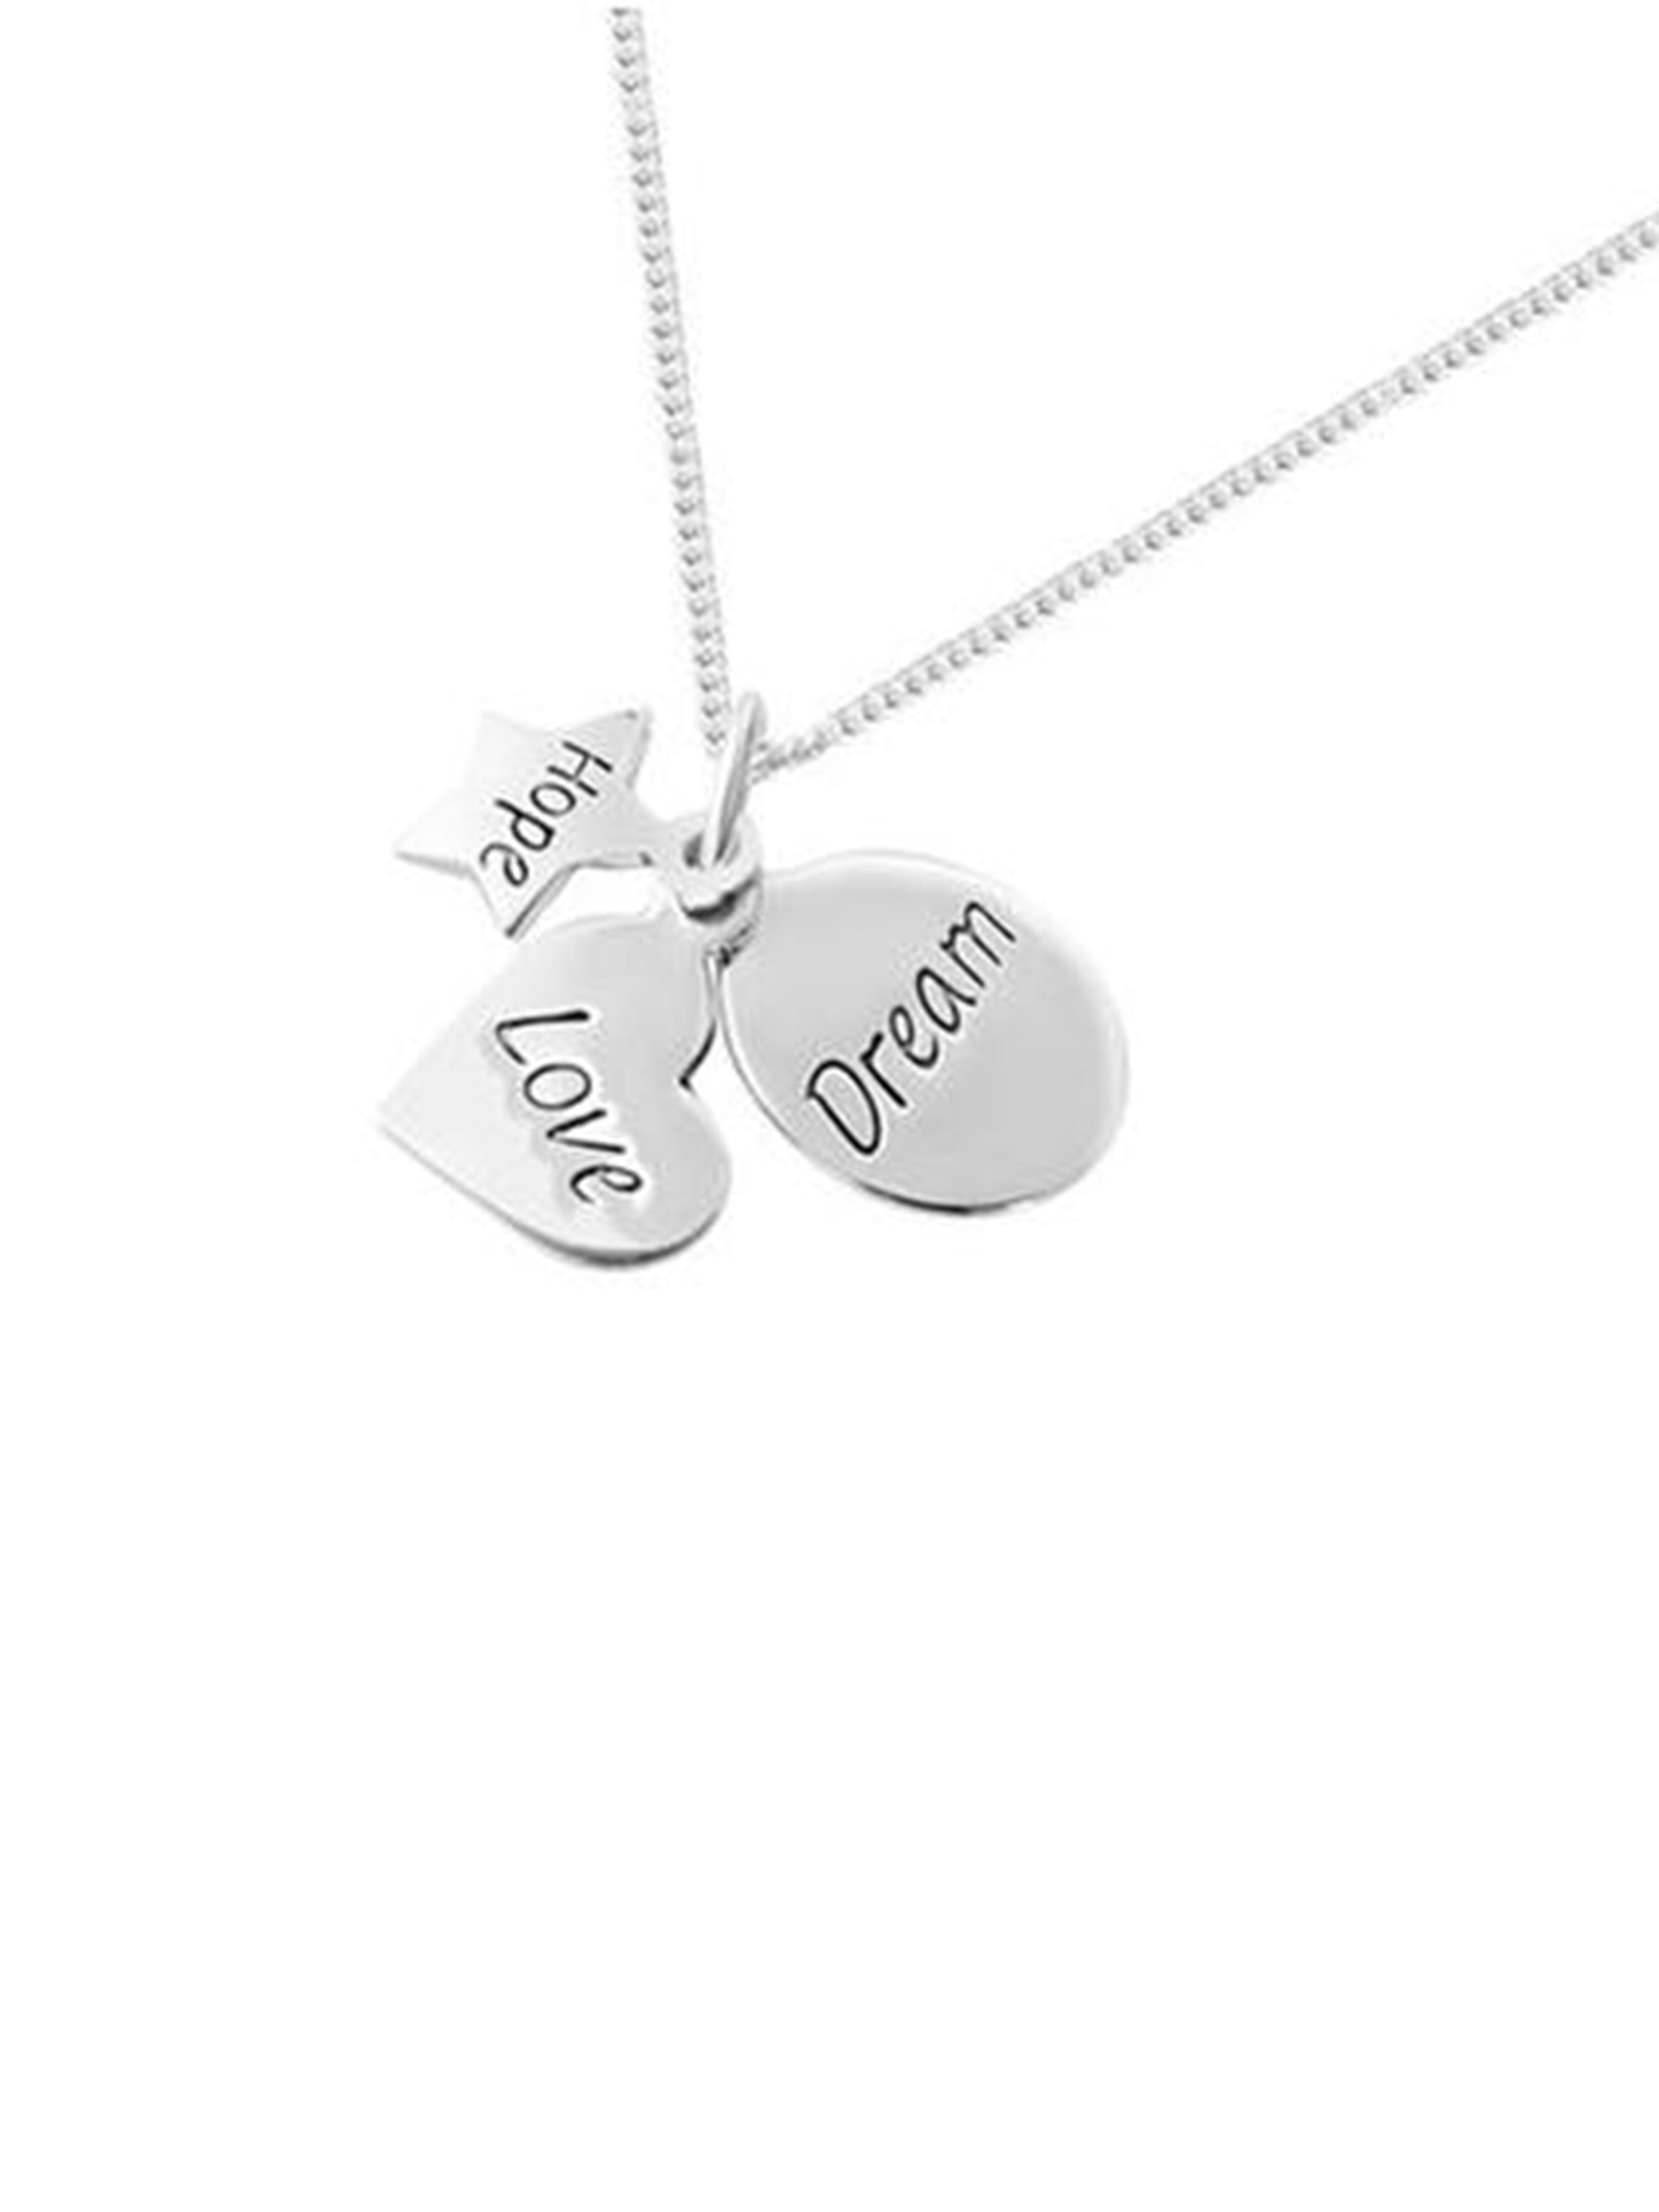 Dream Love Hope Necklace - Alef Bet Jewelry by Paula